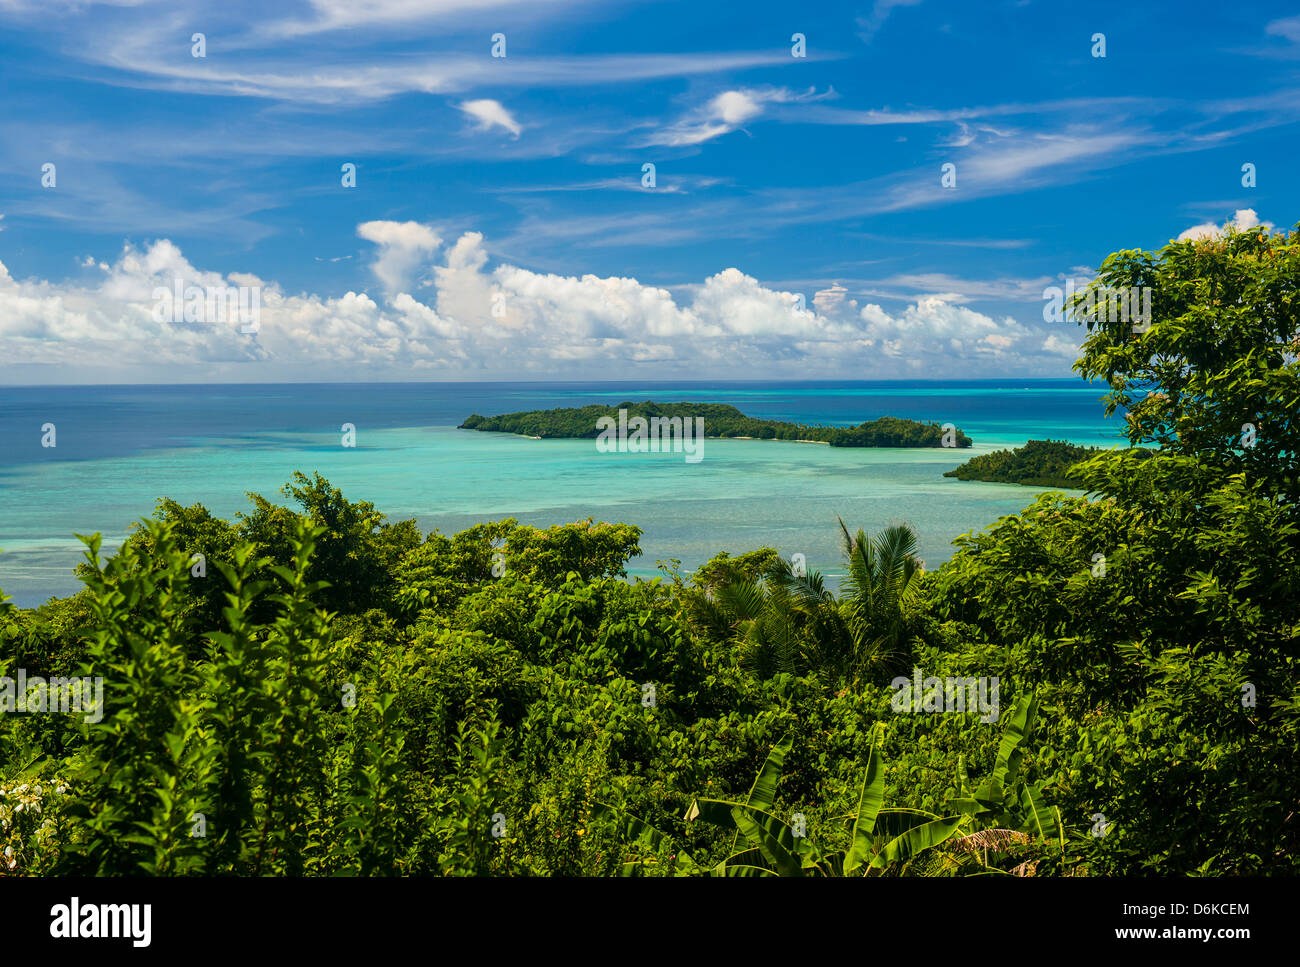 Outlook over the Island of Babeldoab and small islets, Palau, Central Pacific, Pacific - Stock Image